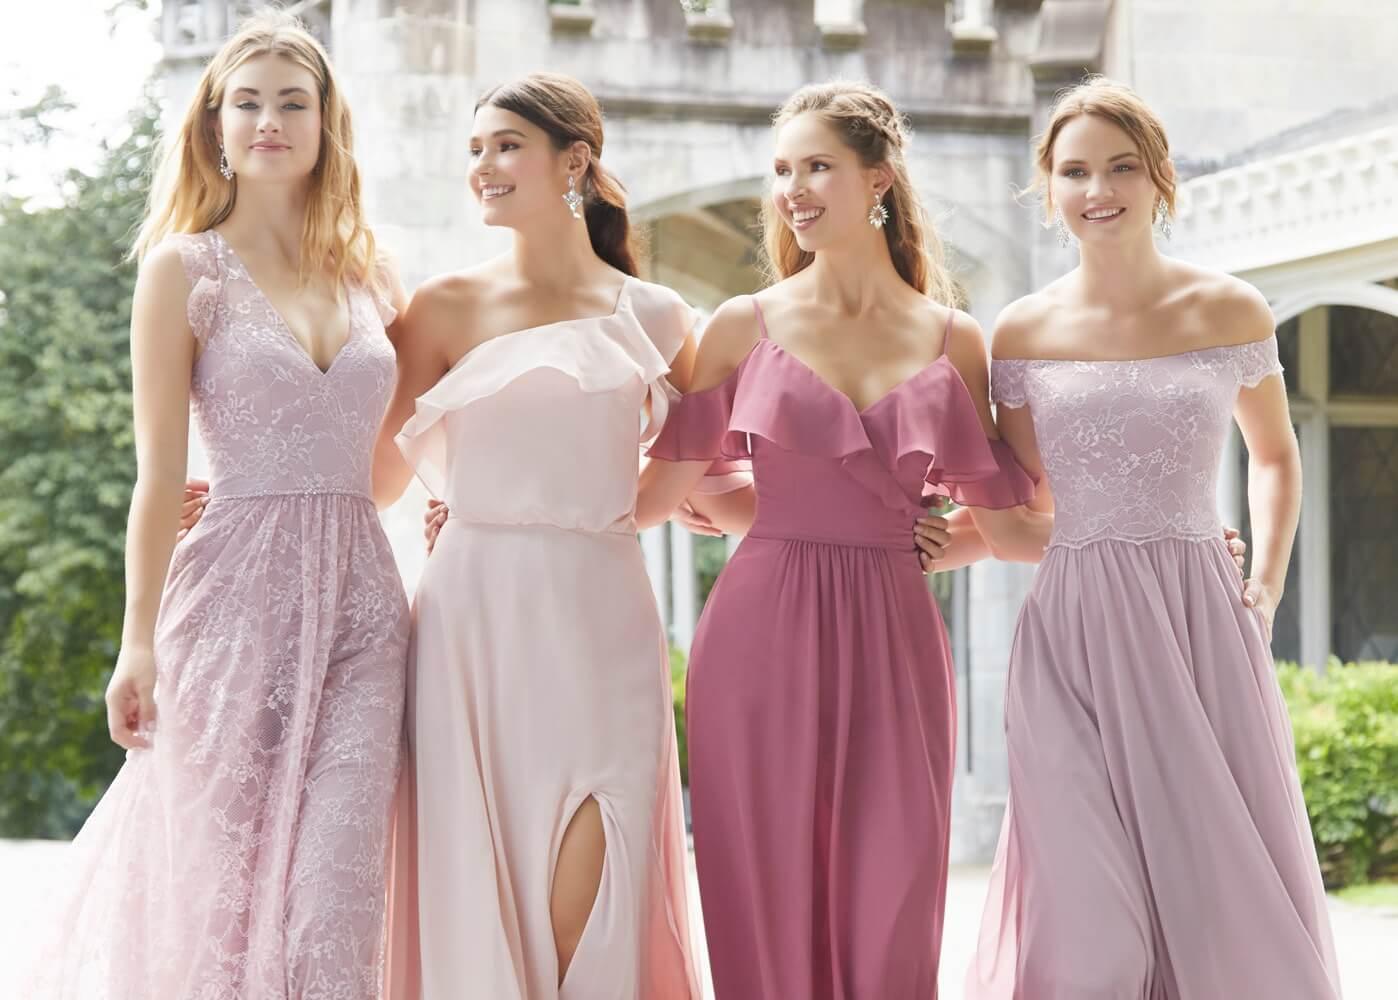 Photo of bridesmaids wearing pink and purple dresses